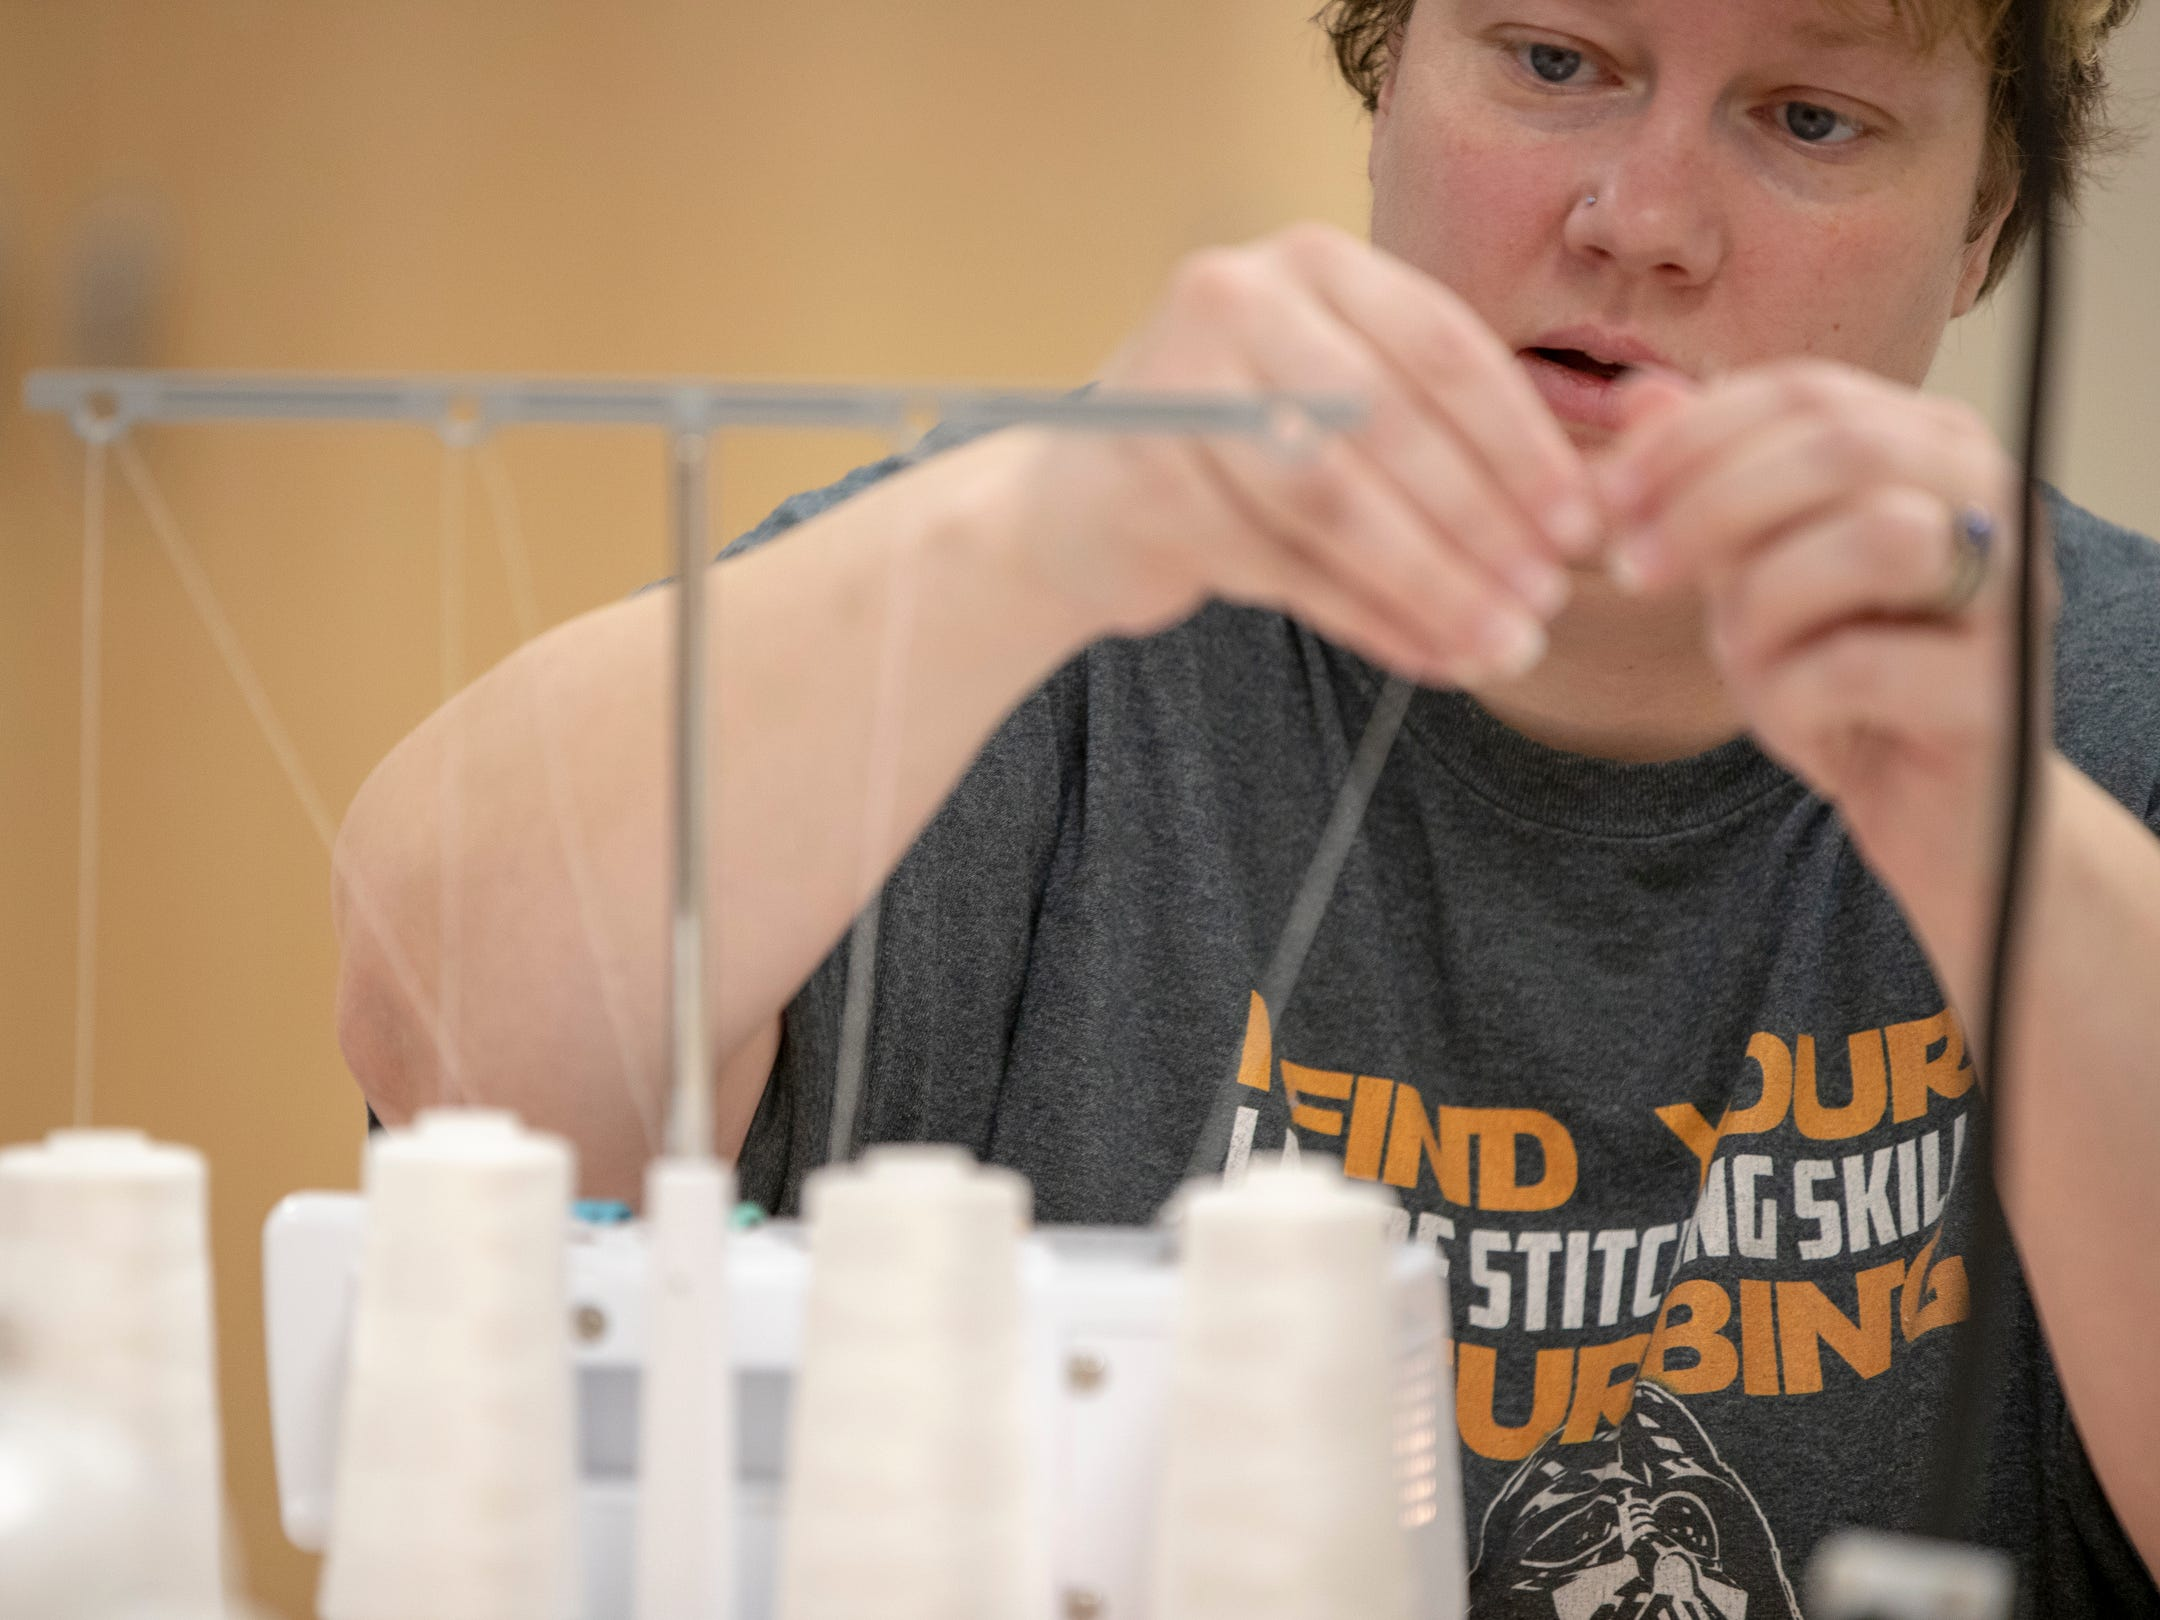 Rachel Anderson, Noblesville, works with a serger, which is helping her make a set of leggings at Ignite, a new shared work space for artists and creative people at Hamilton East Public Library in Fishers, Sunday, Nov. 4, 2018. The facility is open during regular open hours and has spaces for pottery, videography, 3D printing, and a host of other activities.